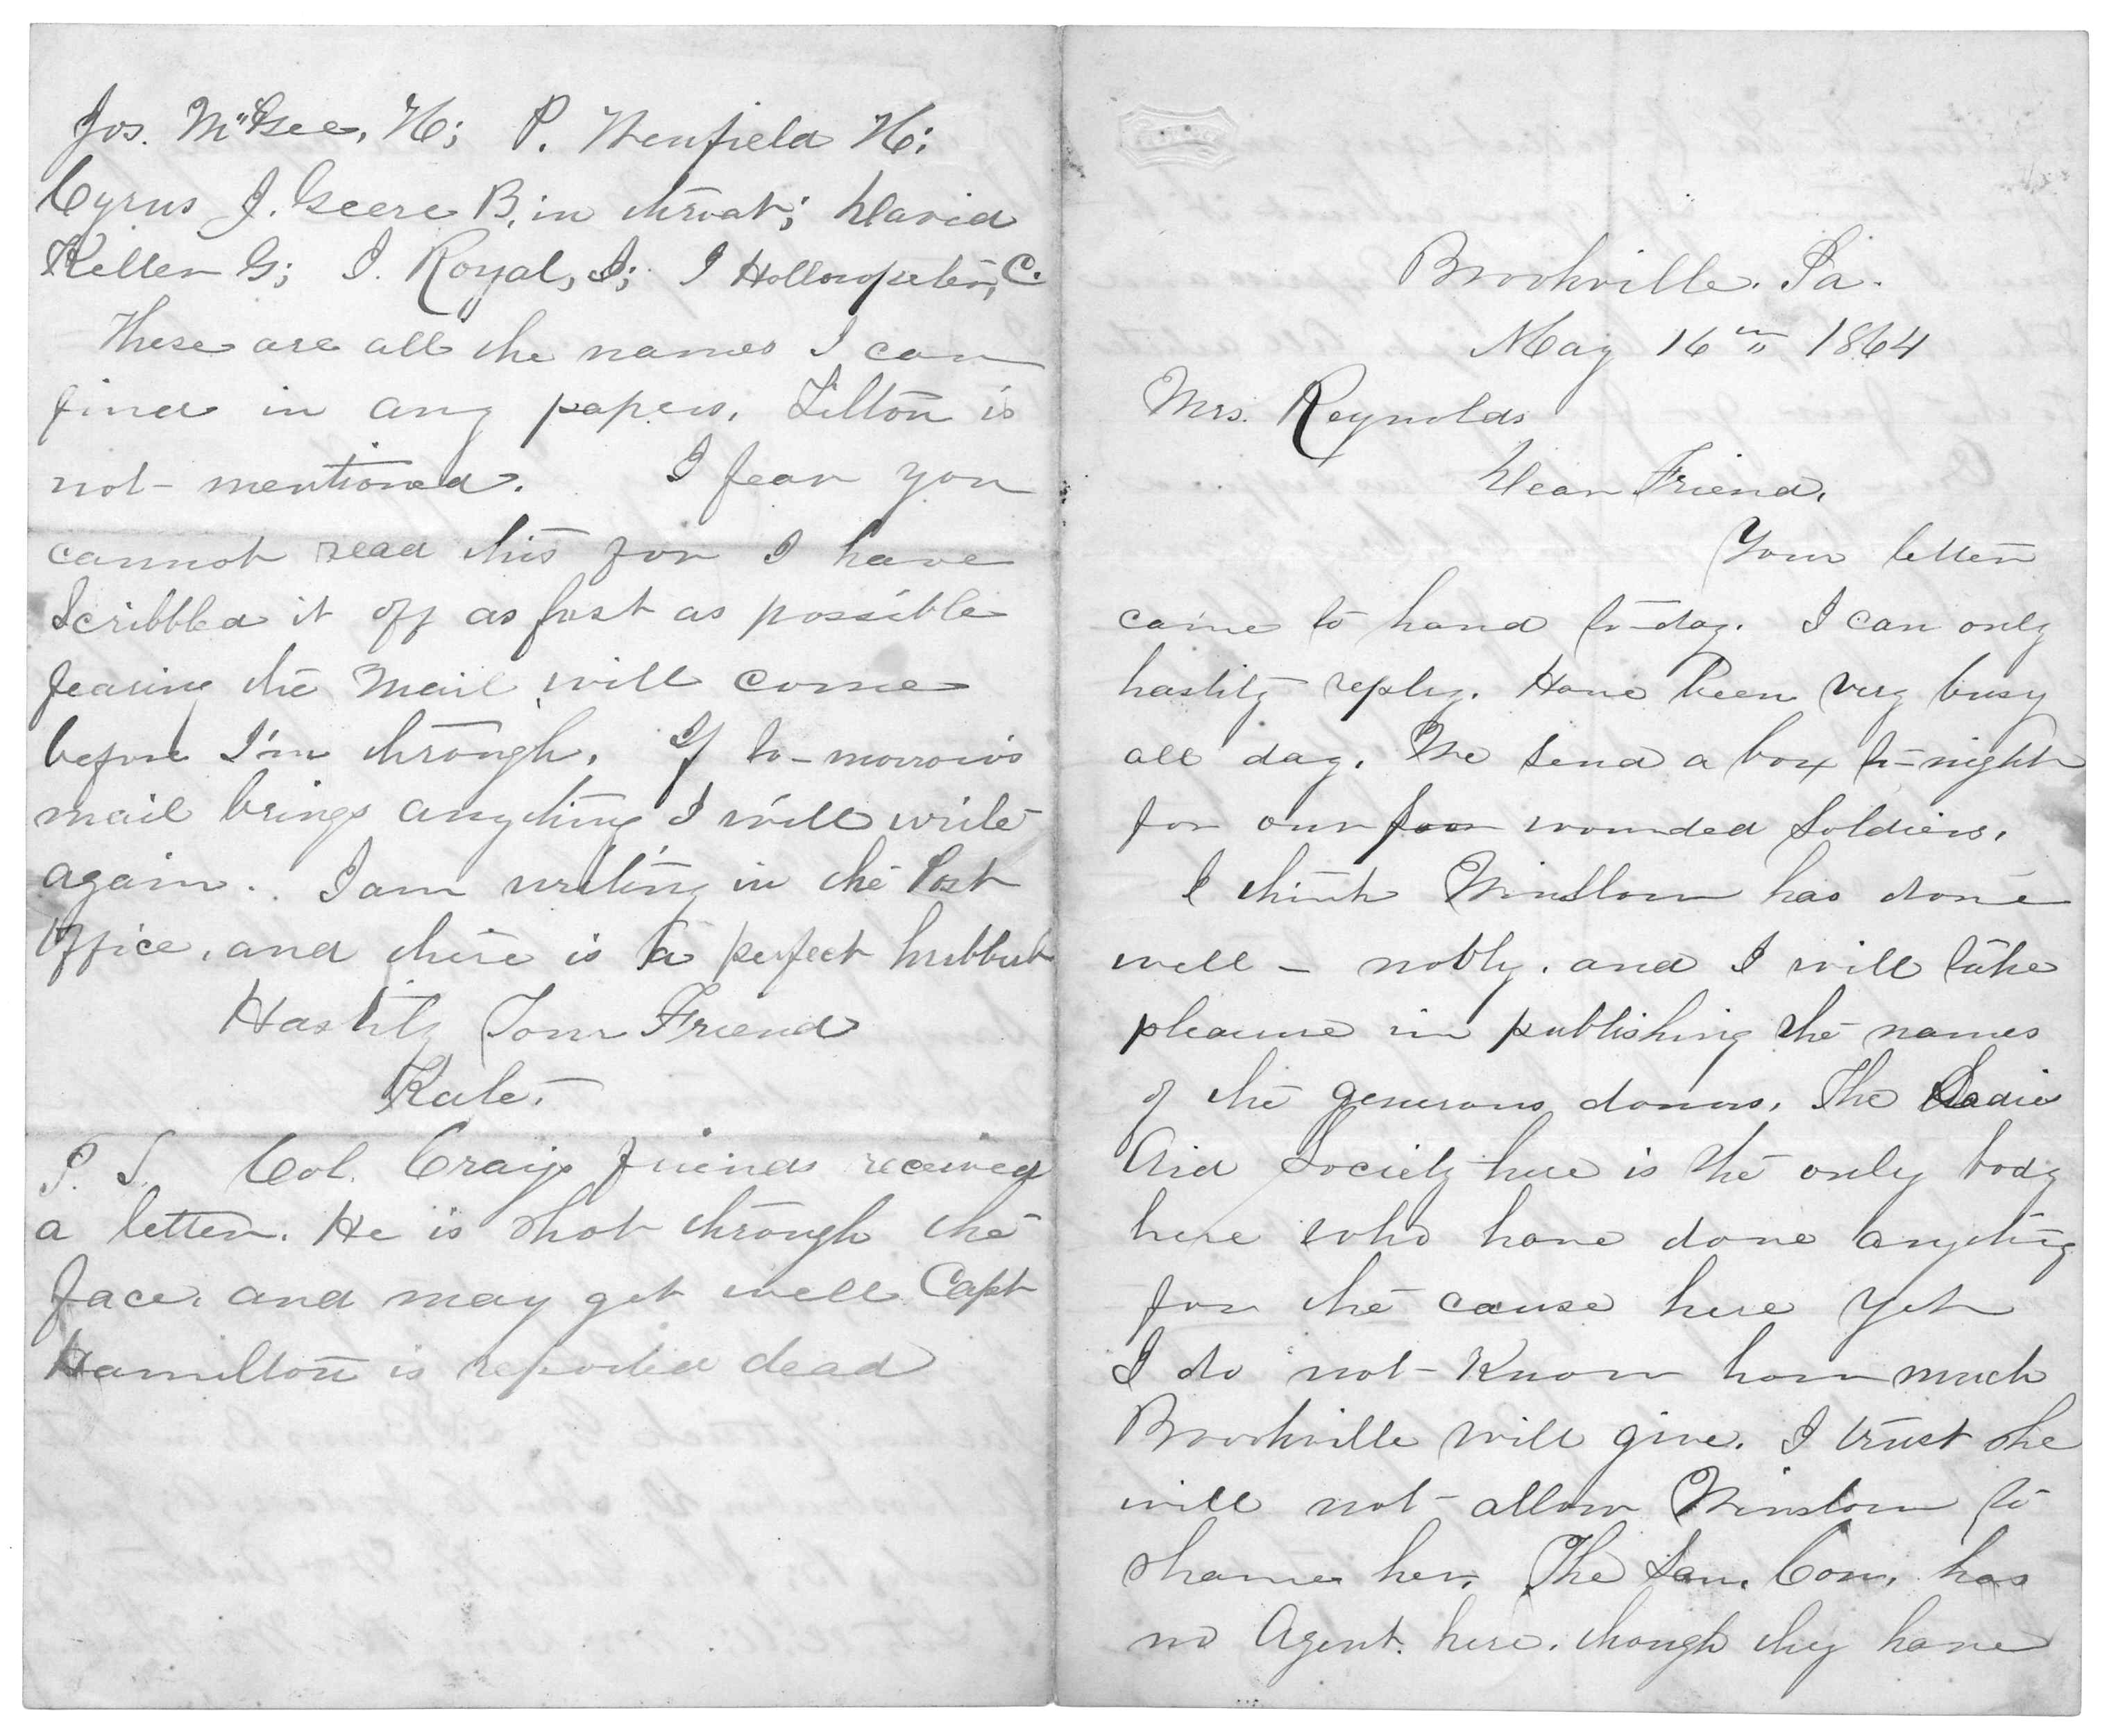 Letter From Kate M Scott To Juliana Smith Reynolds May